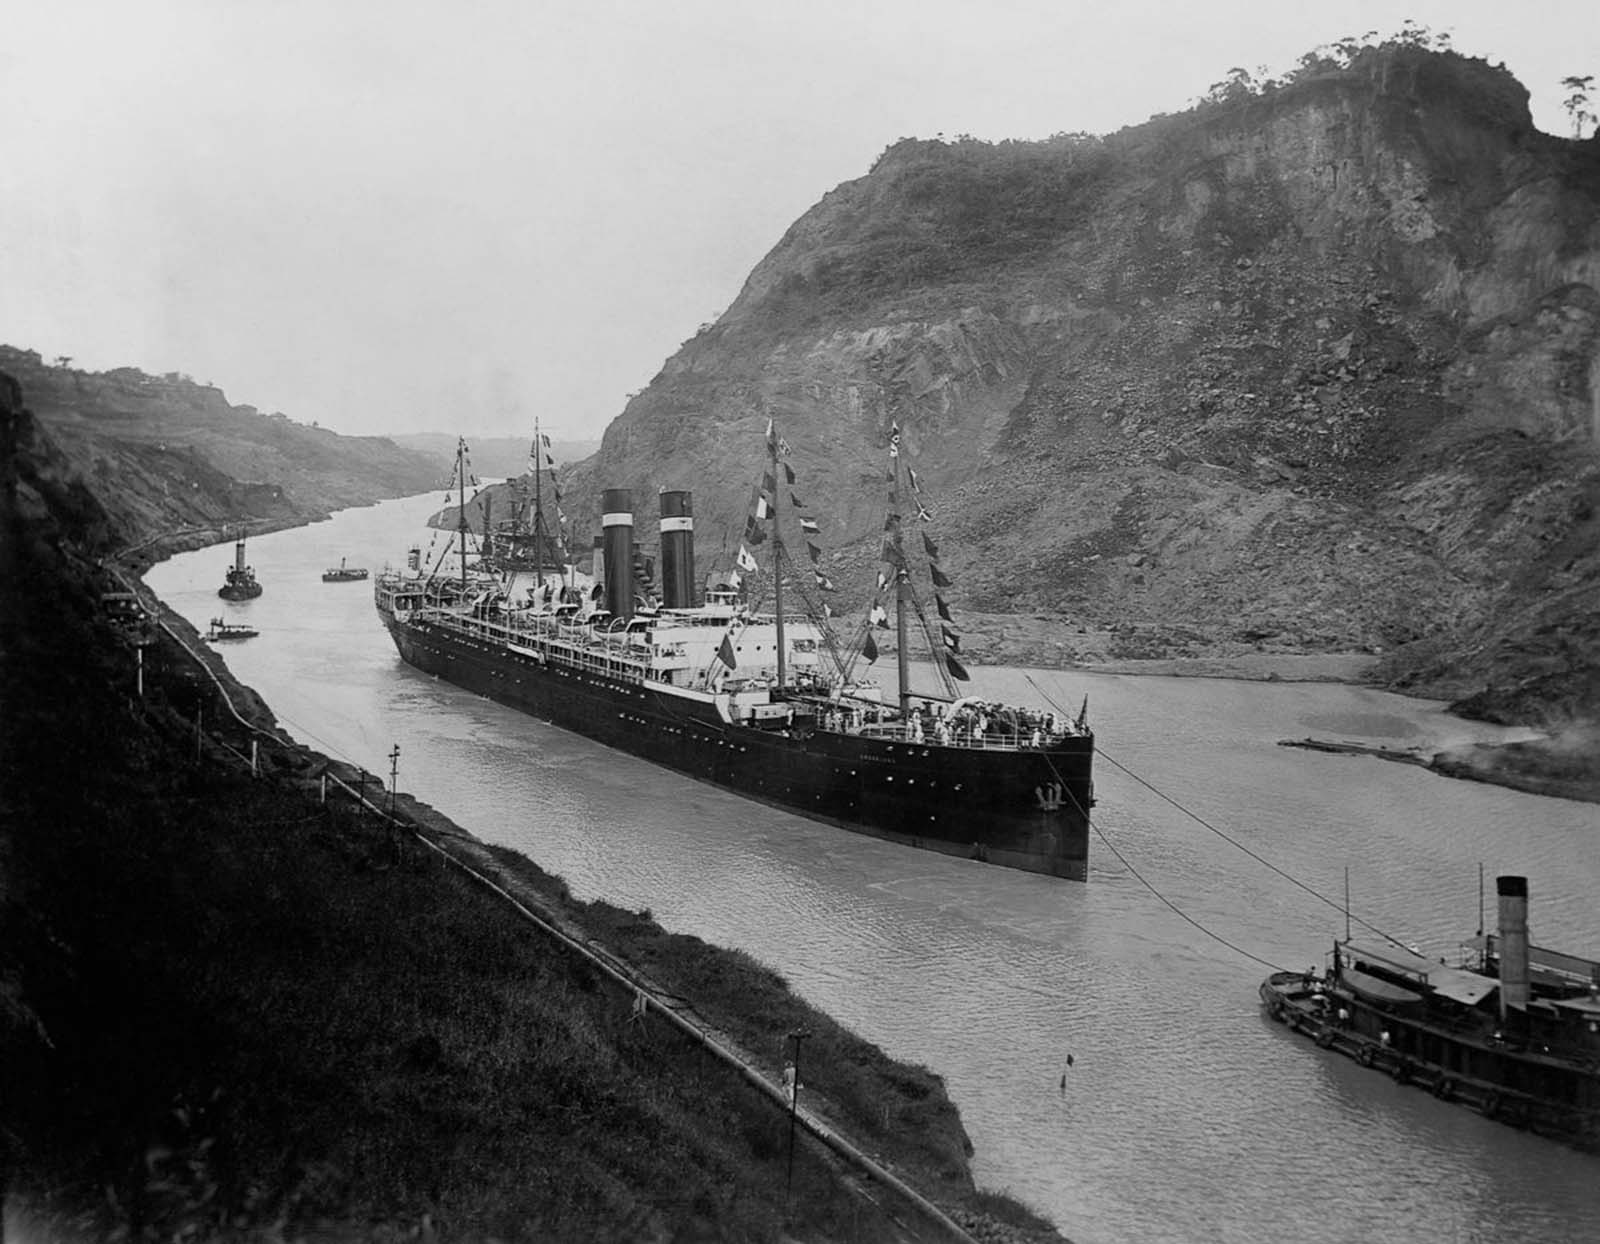 The S.S. Kronland traverses the canal. 1915.